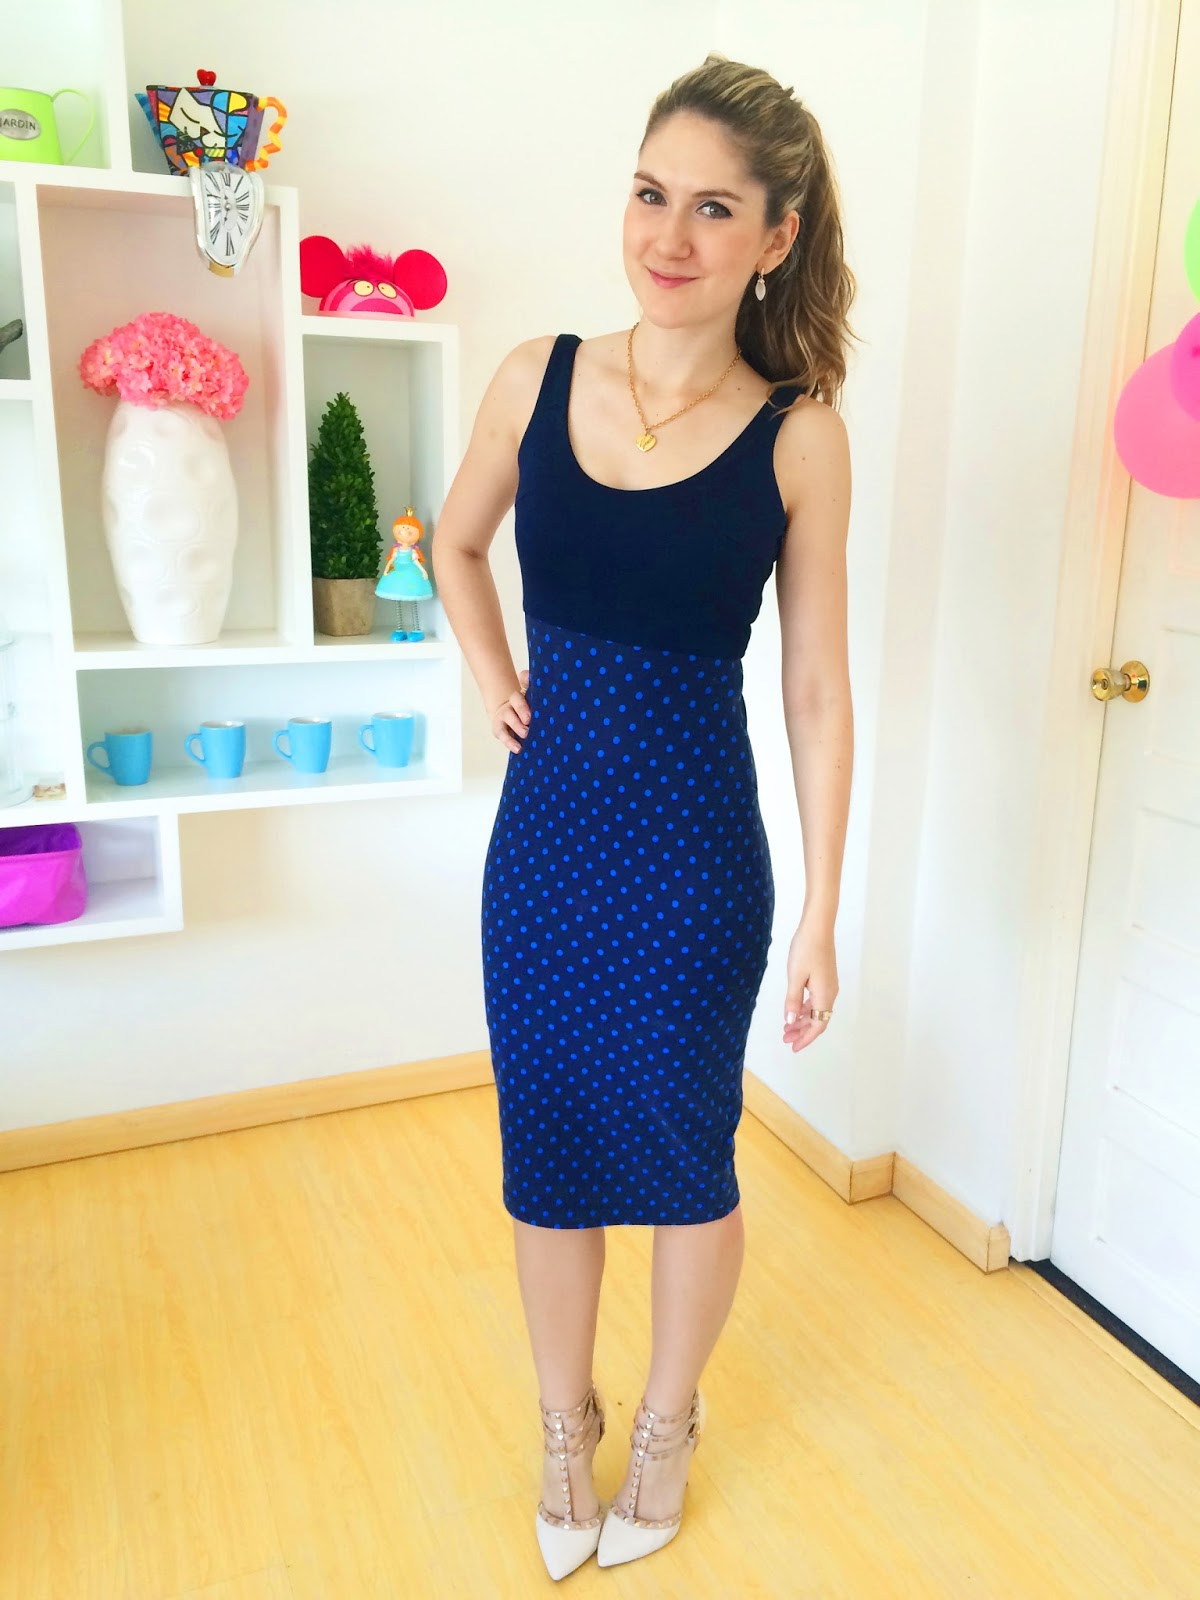 Click through for tips on how to style your pencil skirts for work!